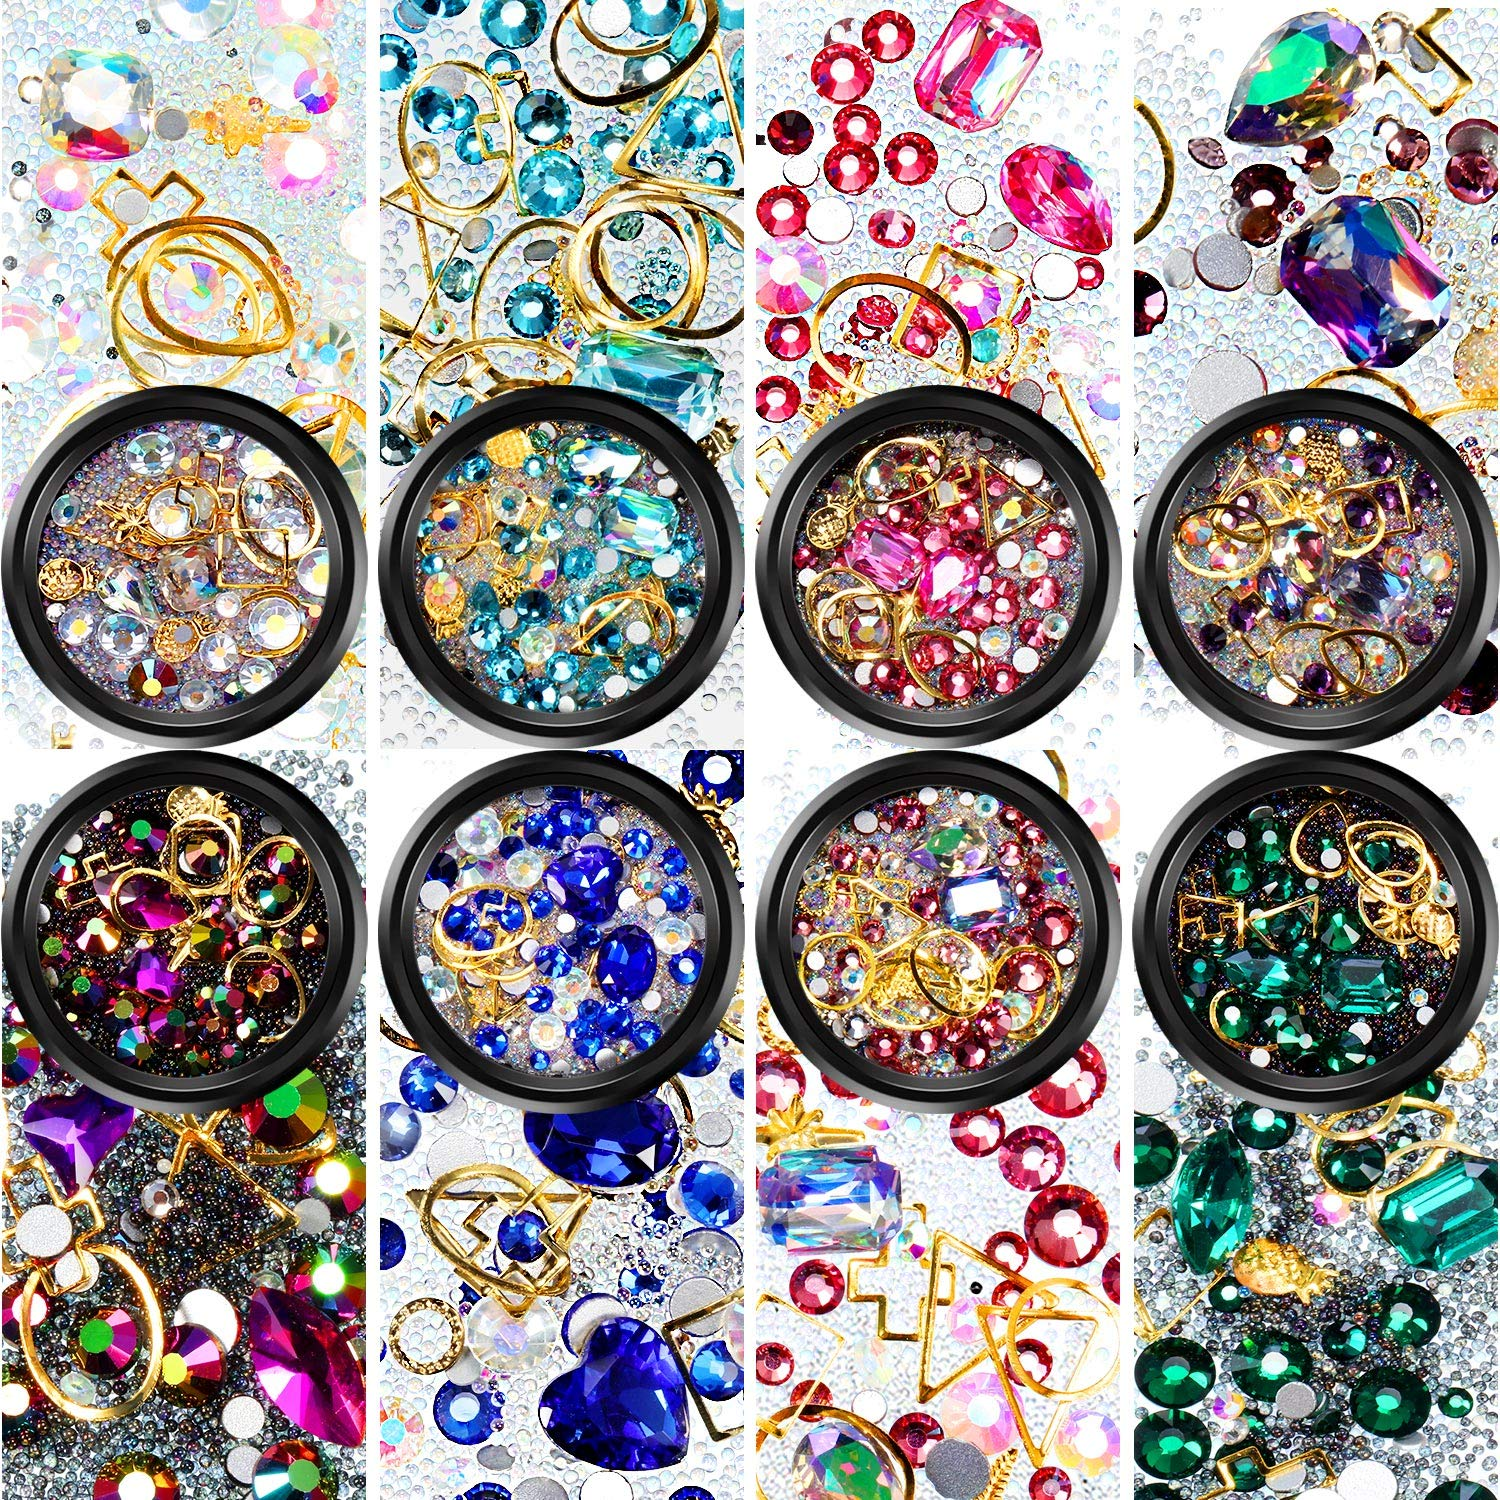 Nail Art Rhinestones Flatback Diamonds Crystals Beads Gems Mixed Colorful for Nail Art Decorations DIY Design (Set 1, 8 Boxes) by Yaomiao